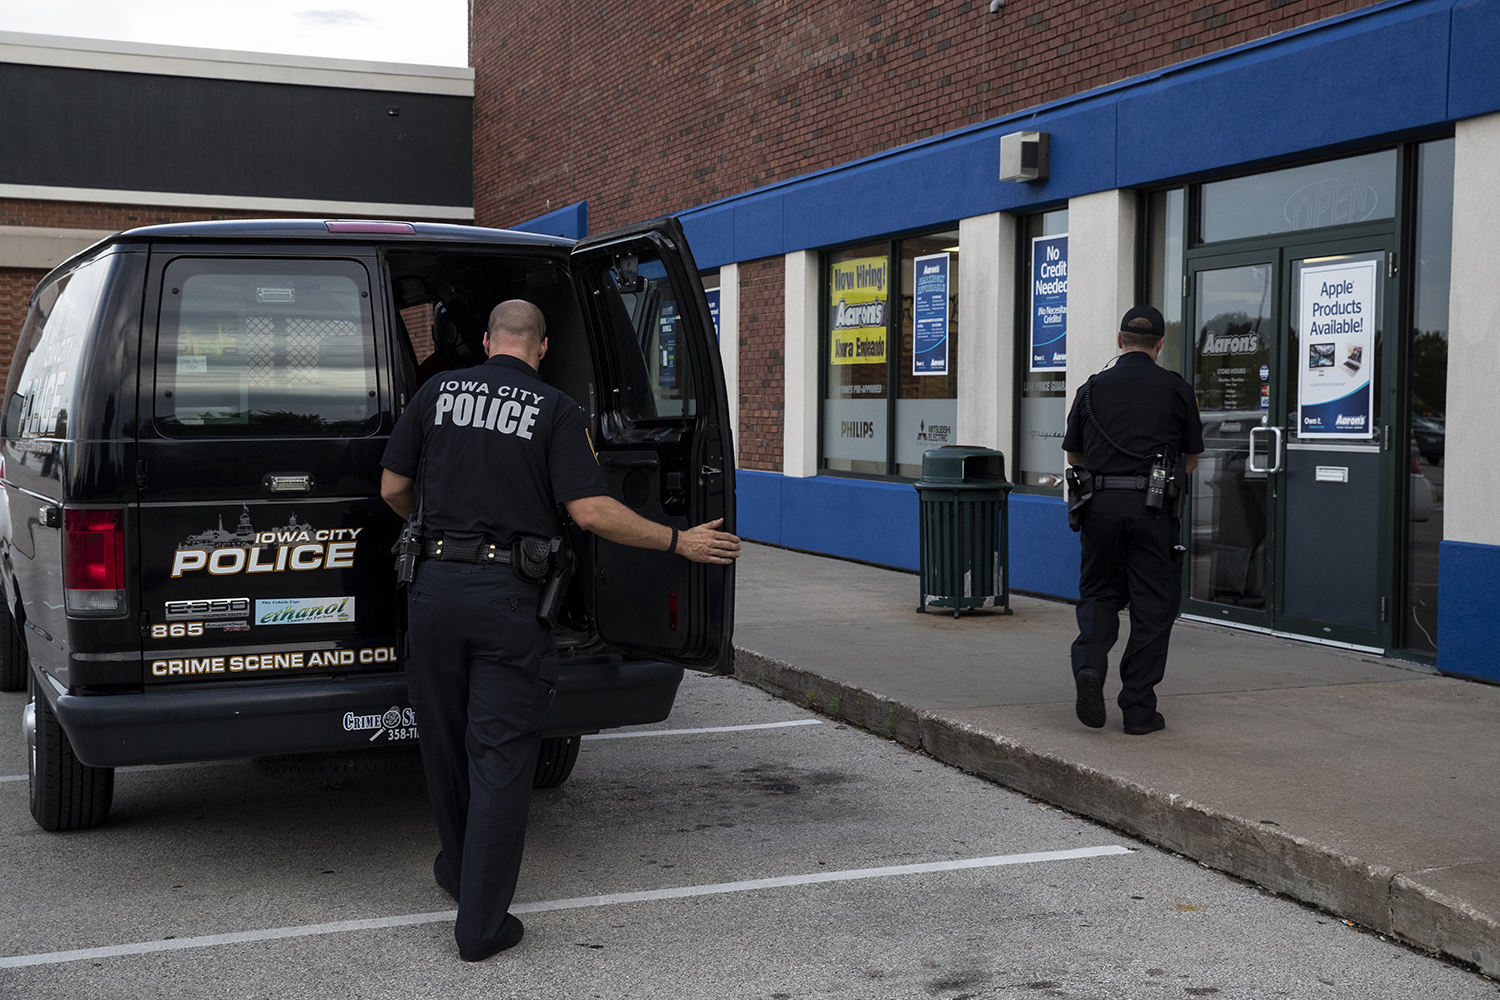 Police investigate the scene at the Iowa City Marketplace after reports of shots fired in the mall on Monday, Sept. 3.